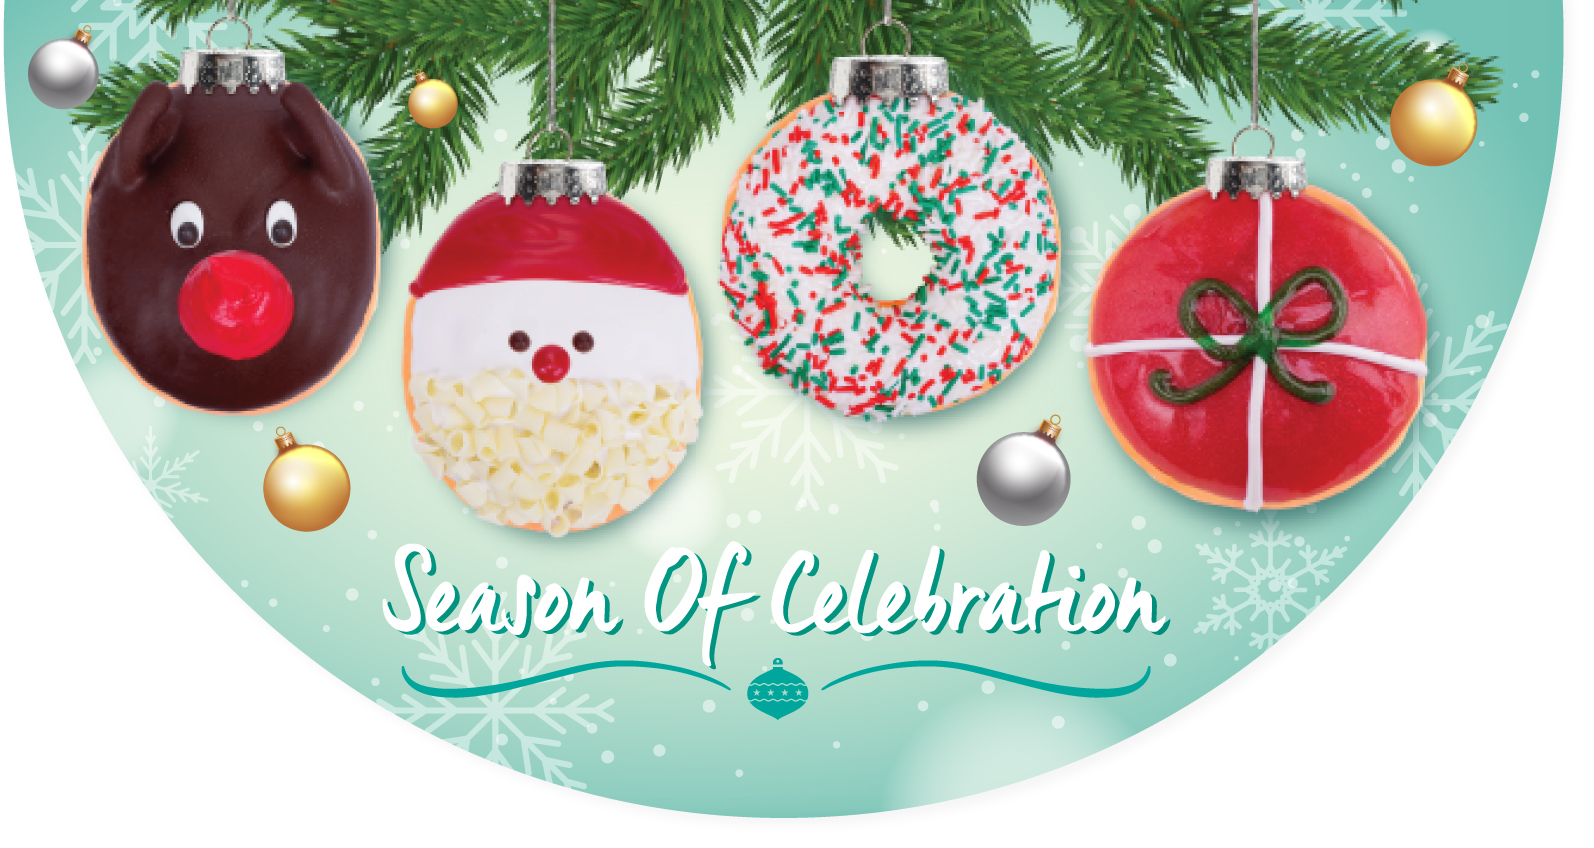 krispykreme_website_holiday